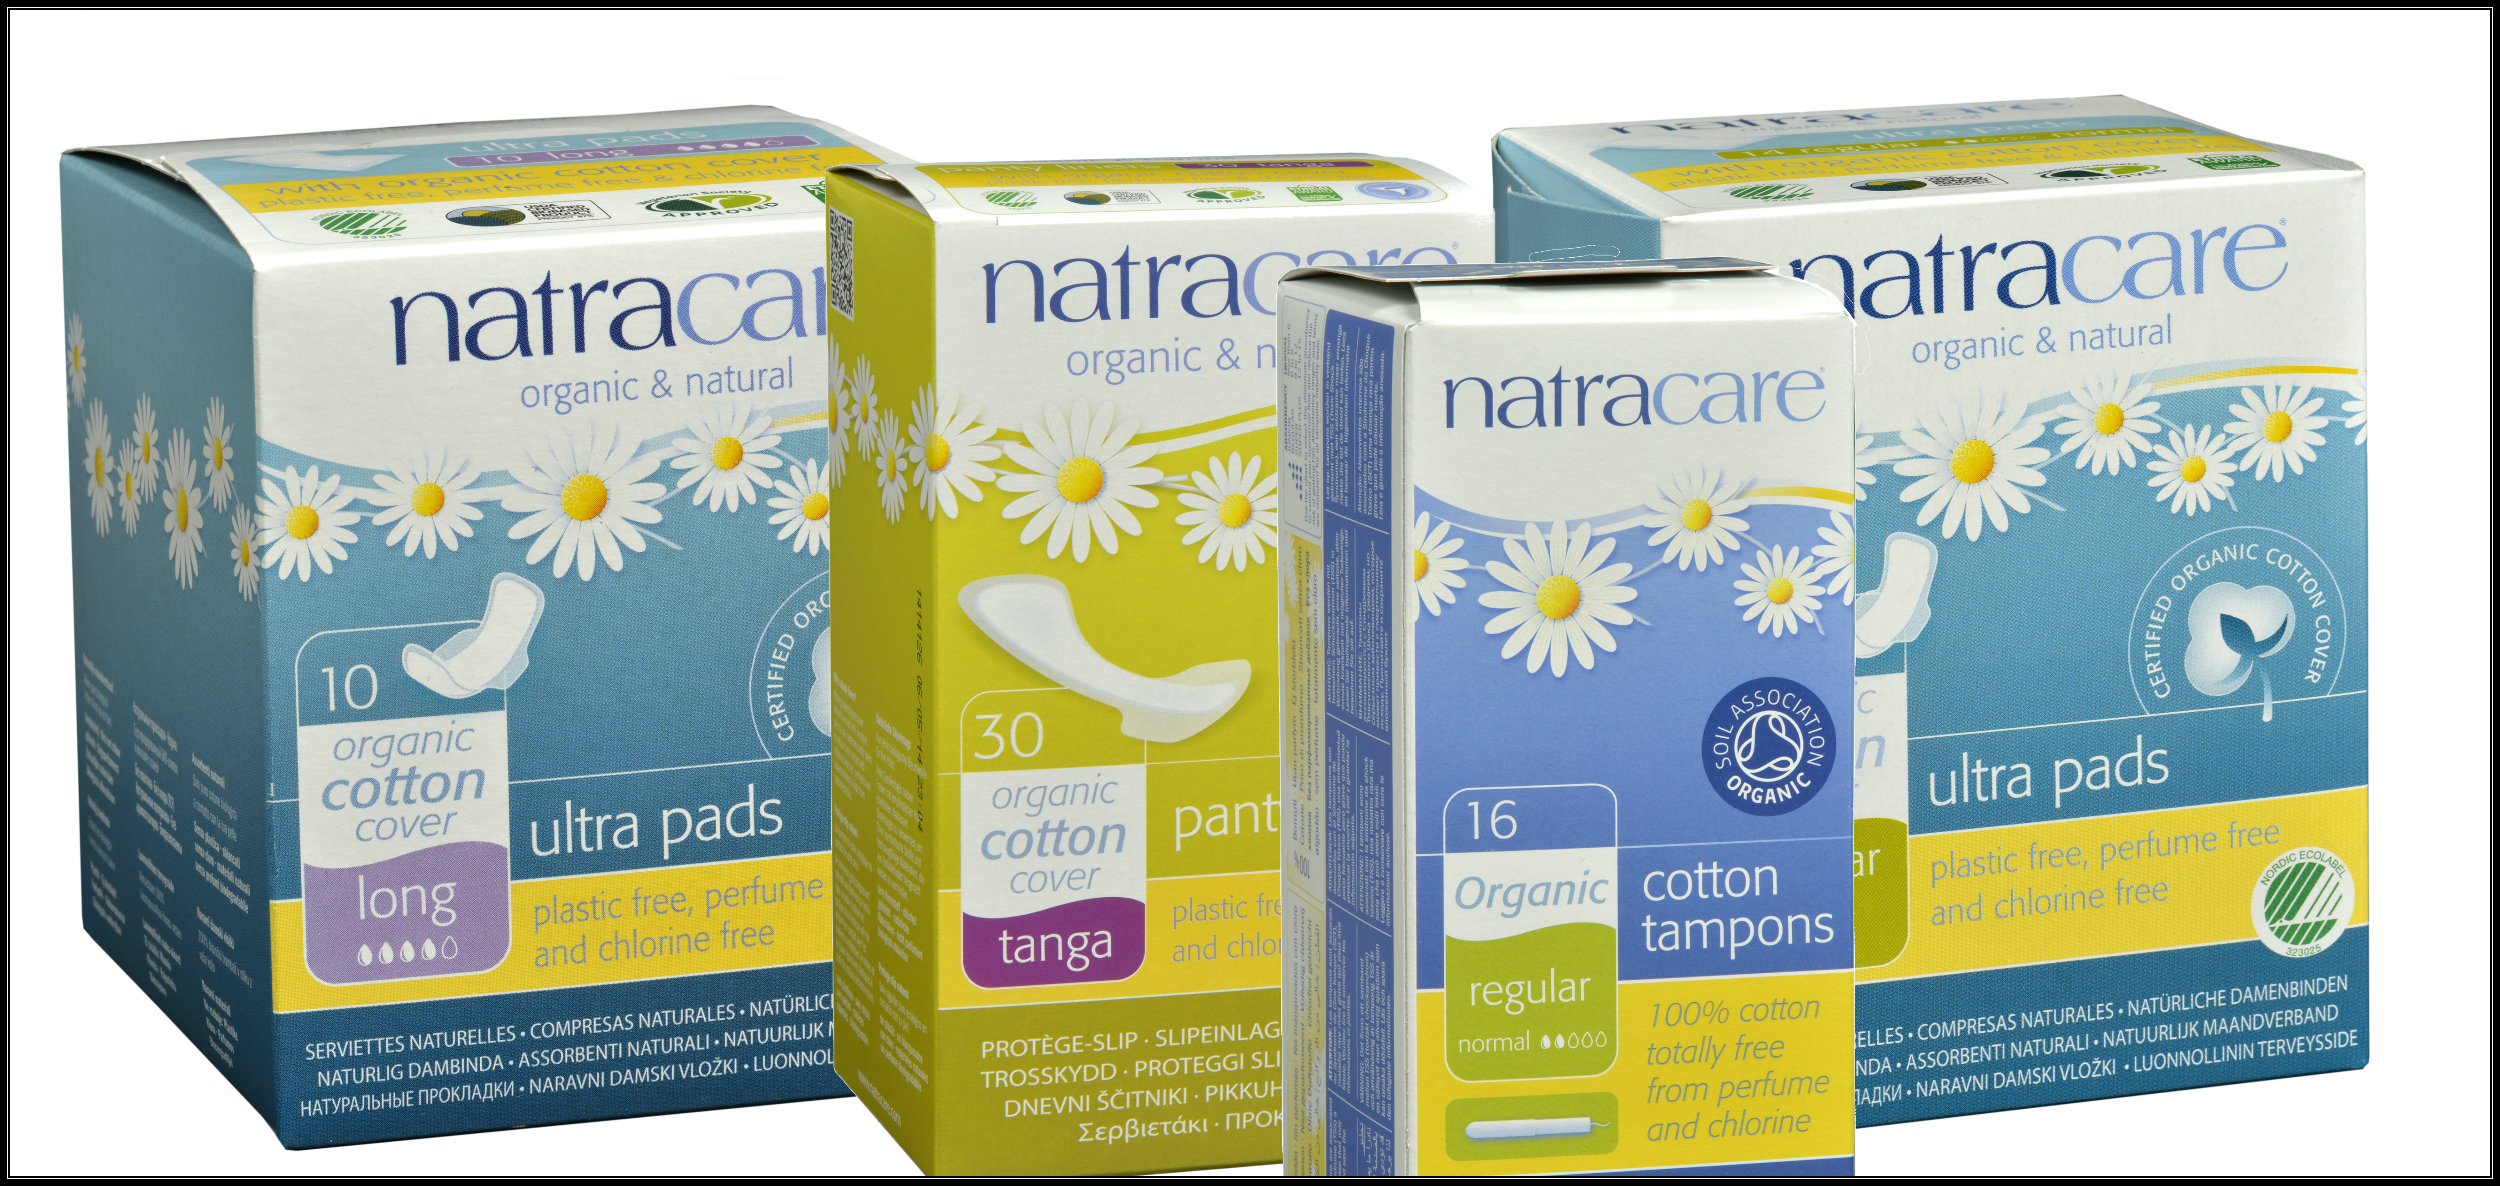 natracare-products